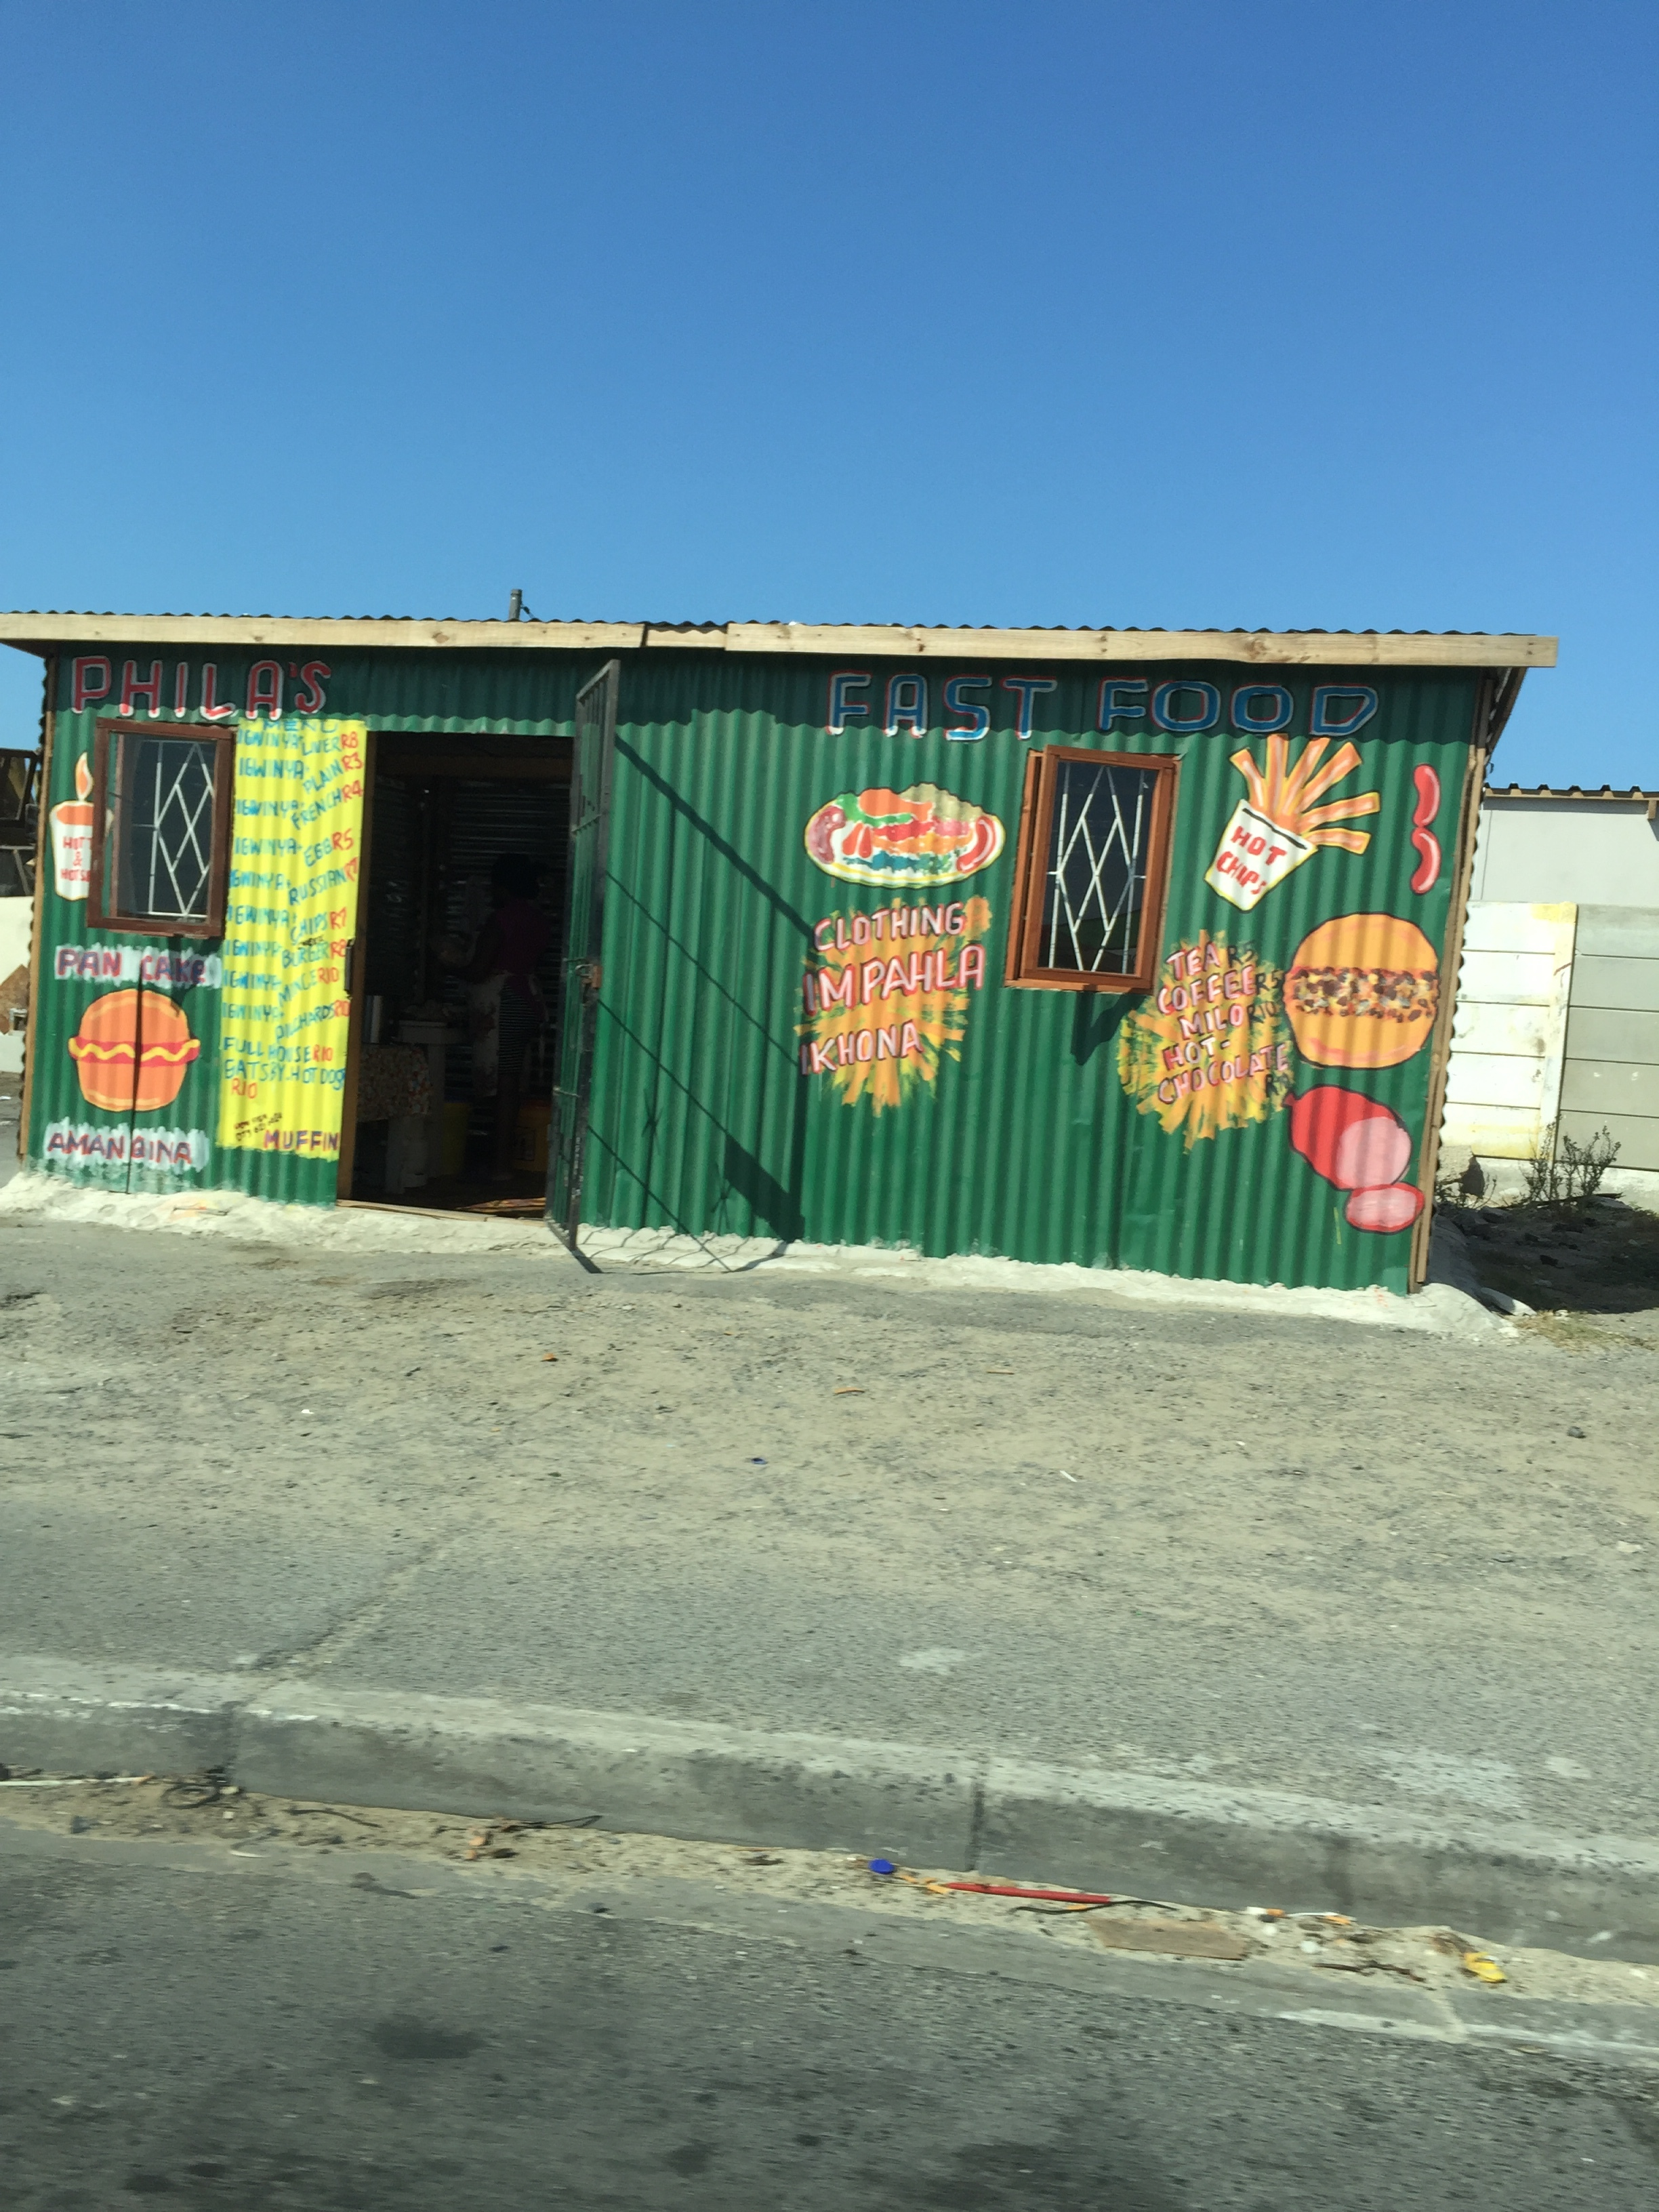 A lot of the shipping crates have been turned into shops with colorful murals painted on them advertising what's inside.